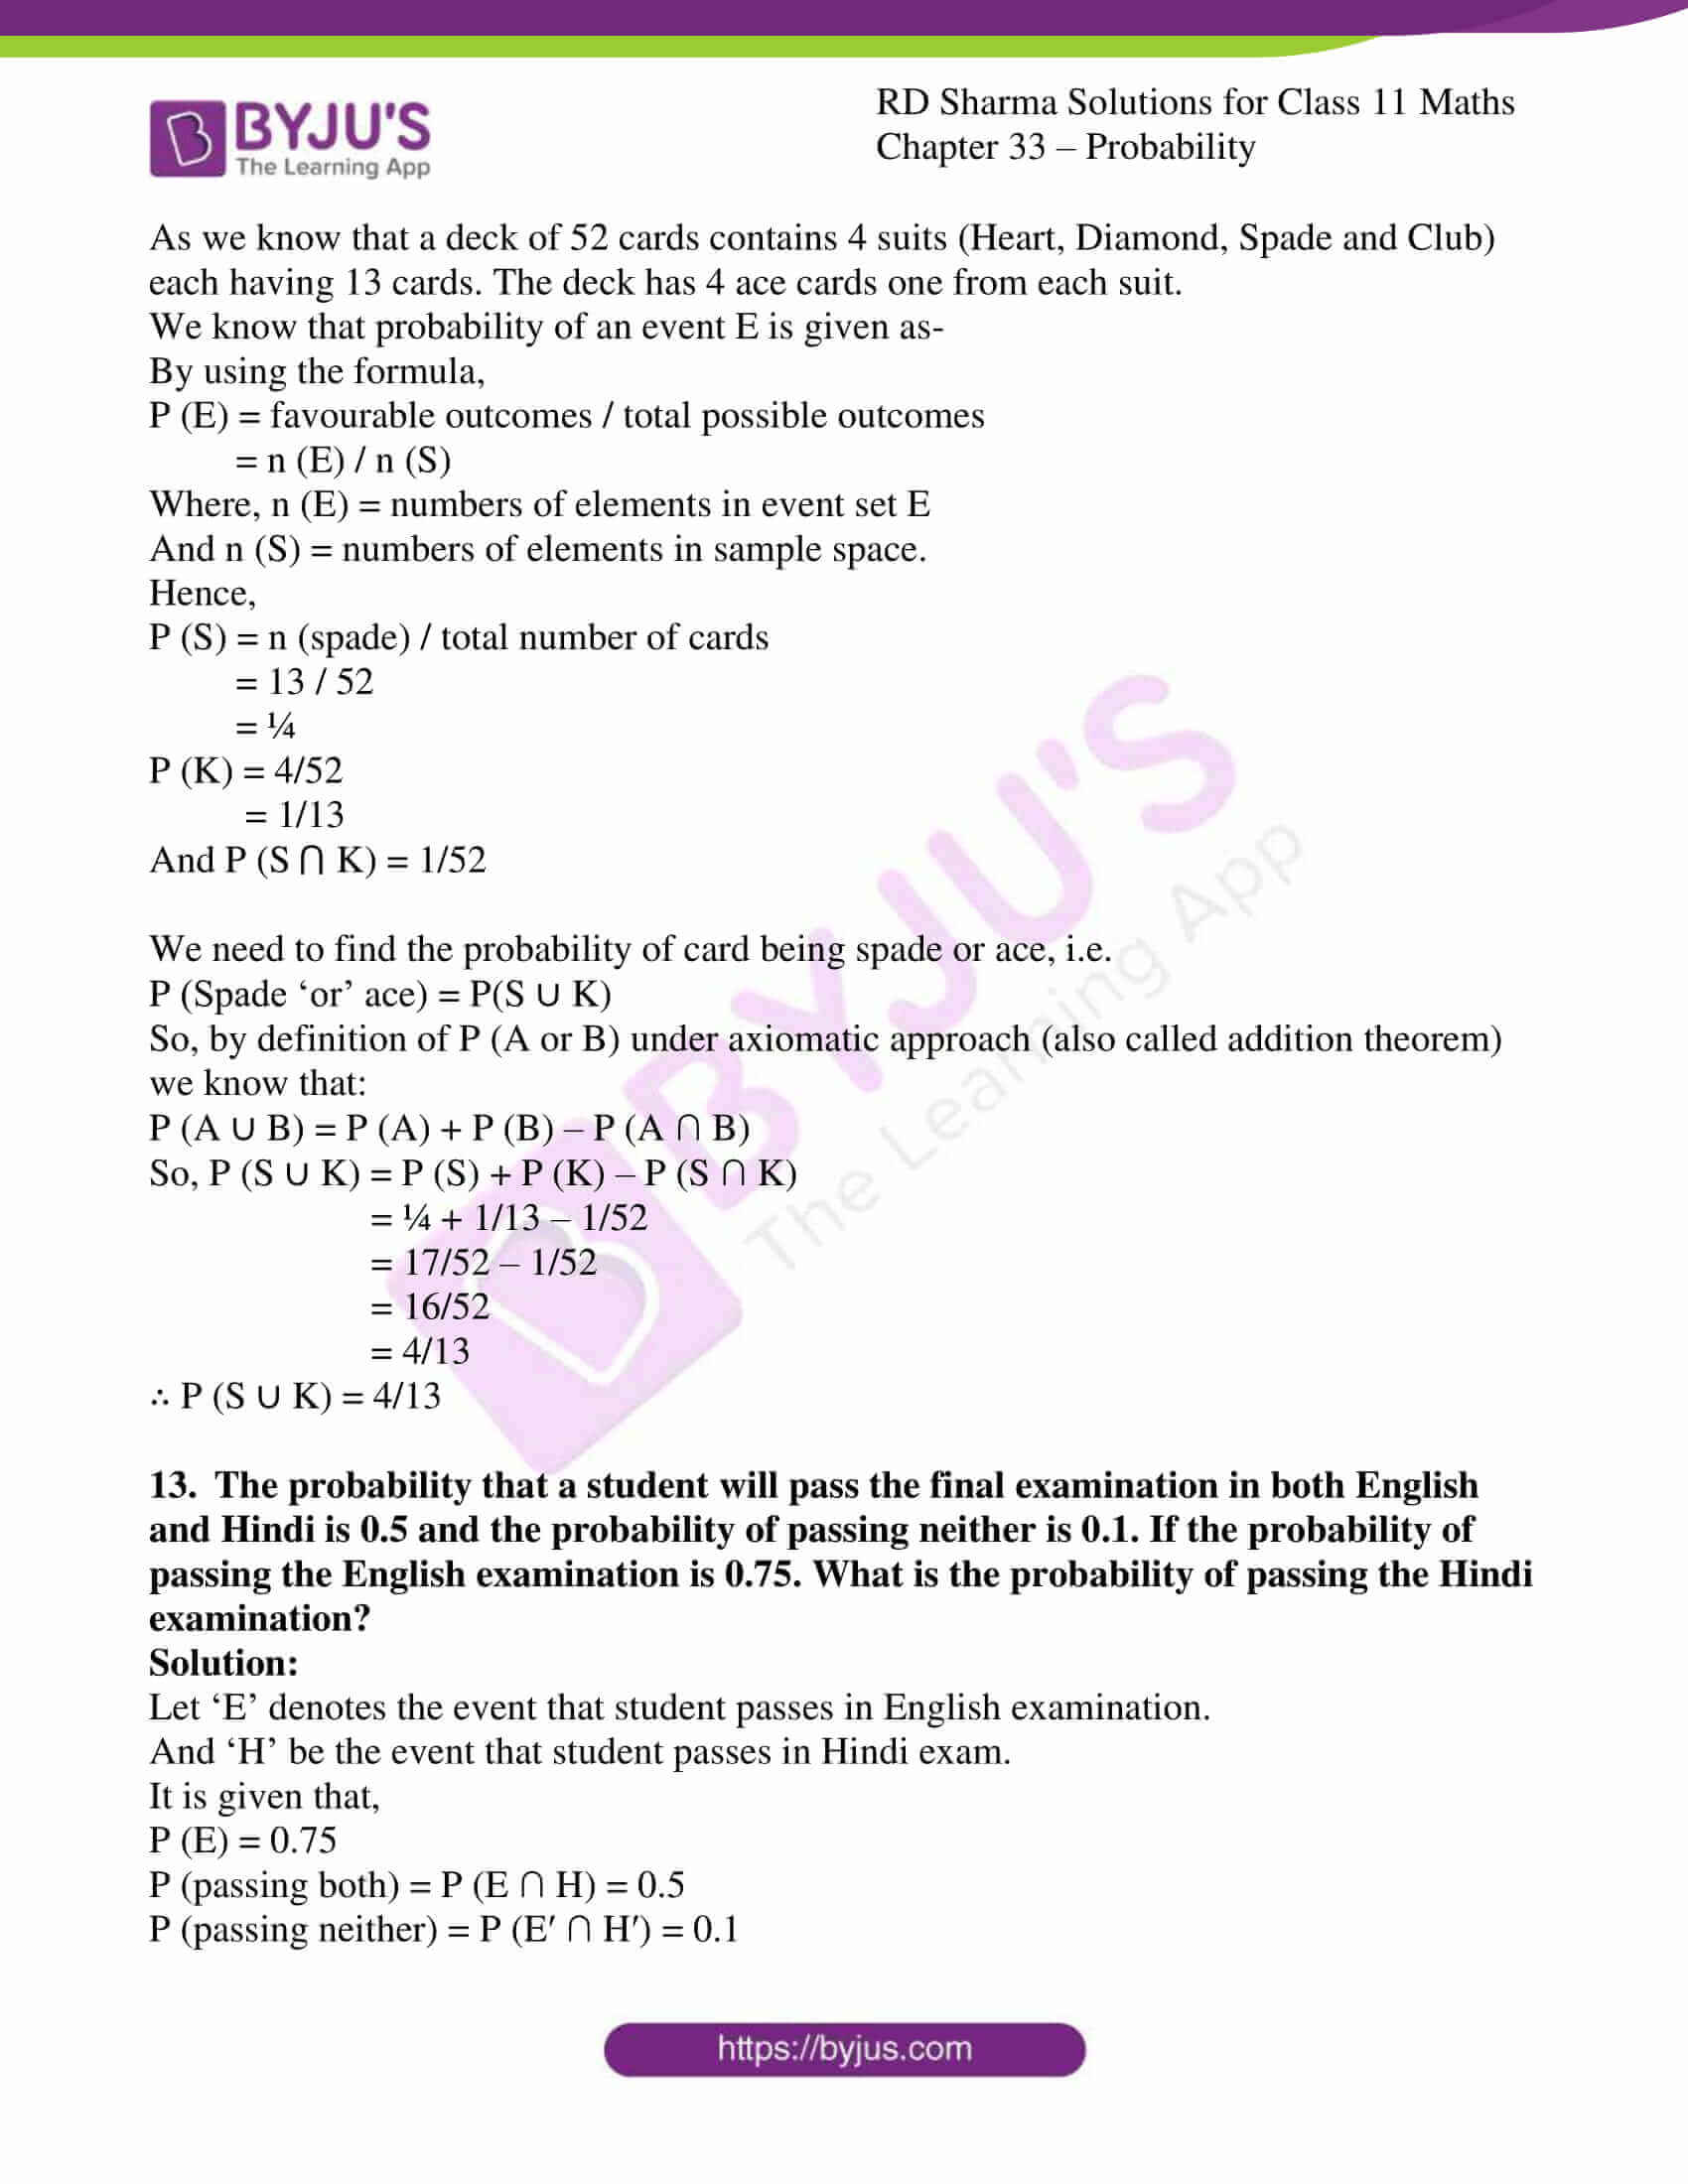 rd sharma class 11 maths chapter 33 ex 4 11